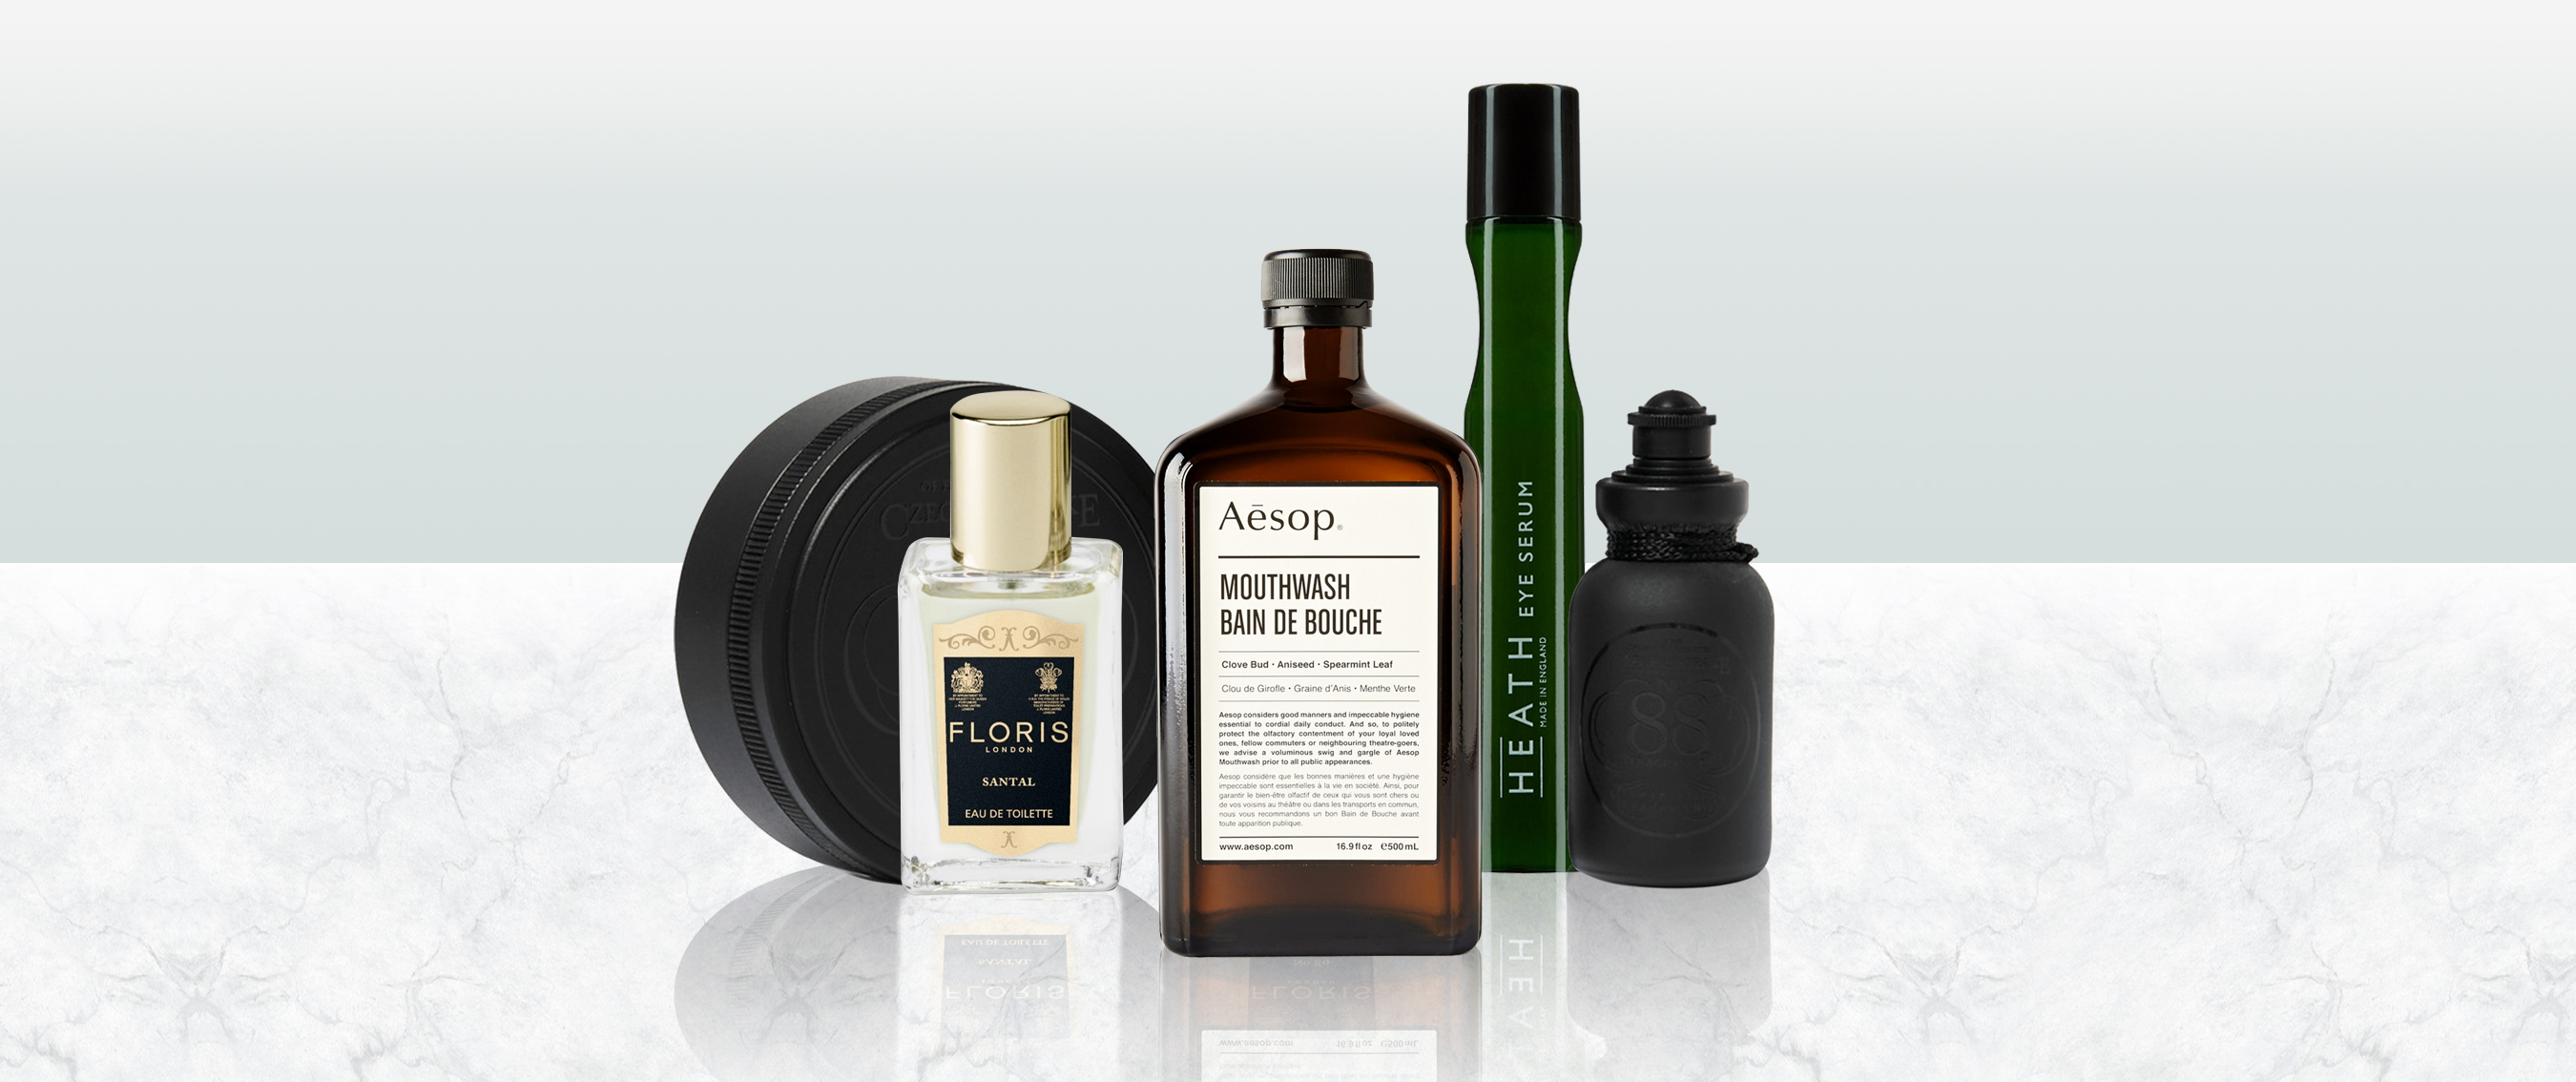 Un Toilette Ou Une Toilette you should be packing these 5 essentials in your travel